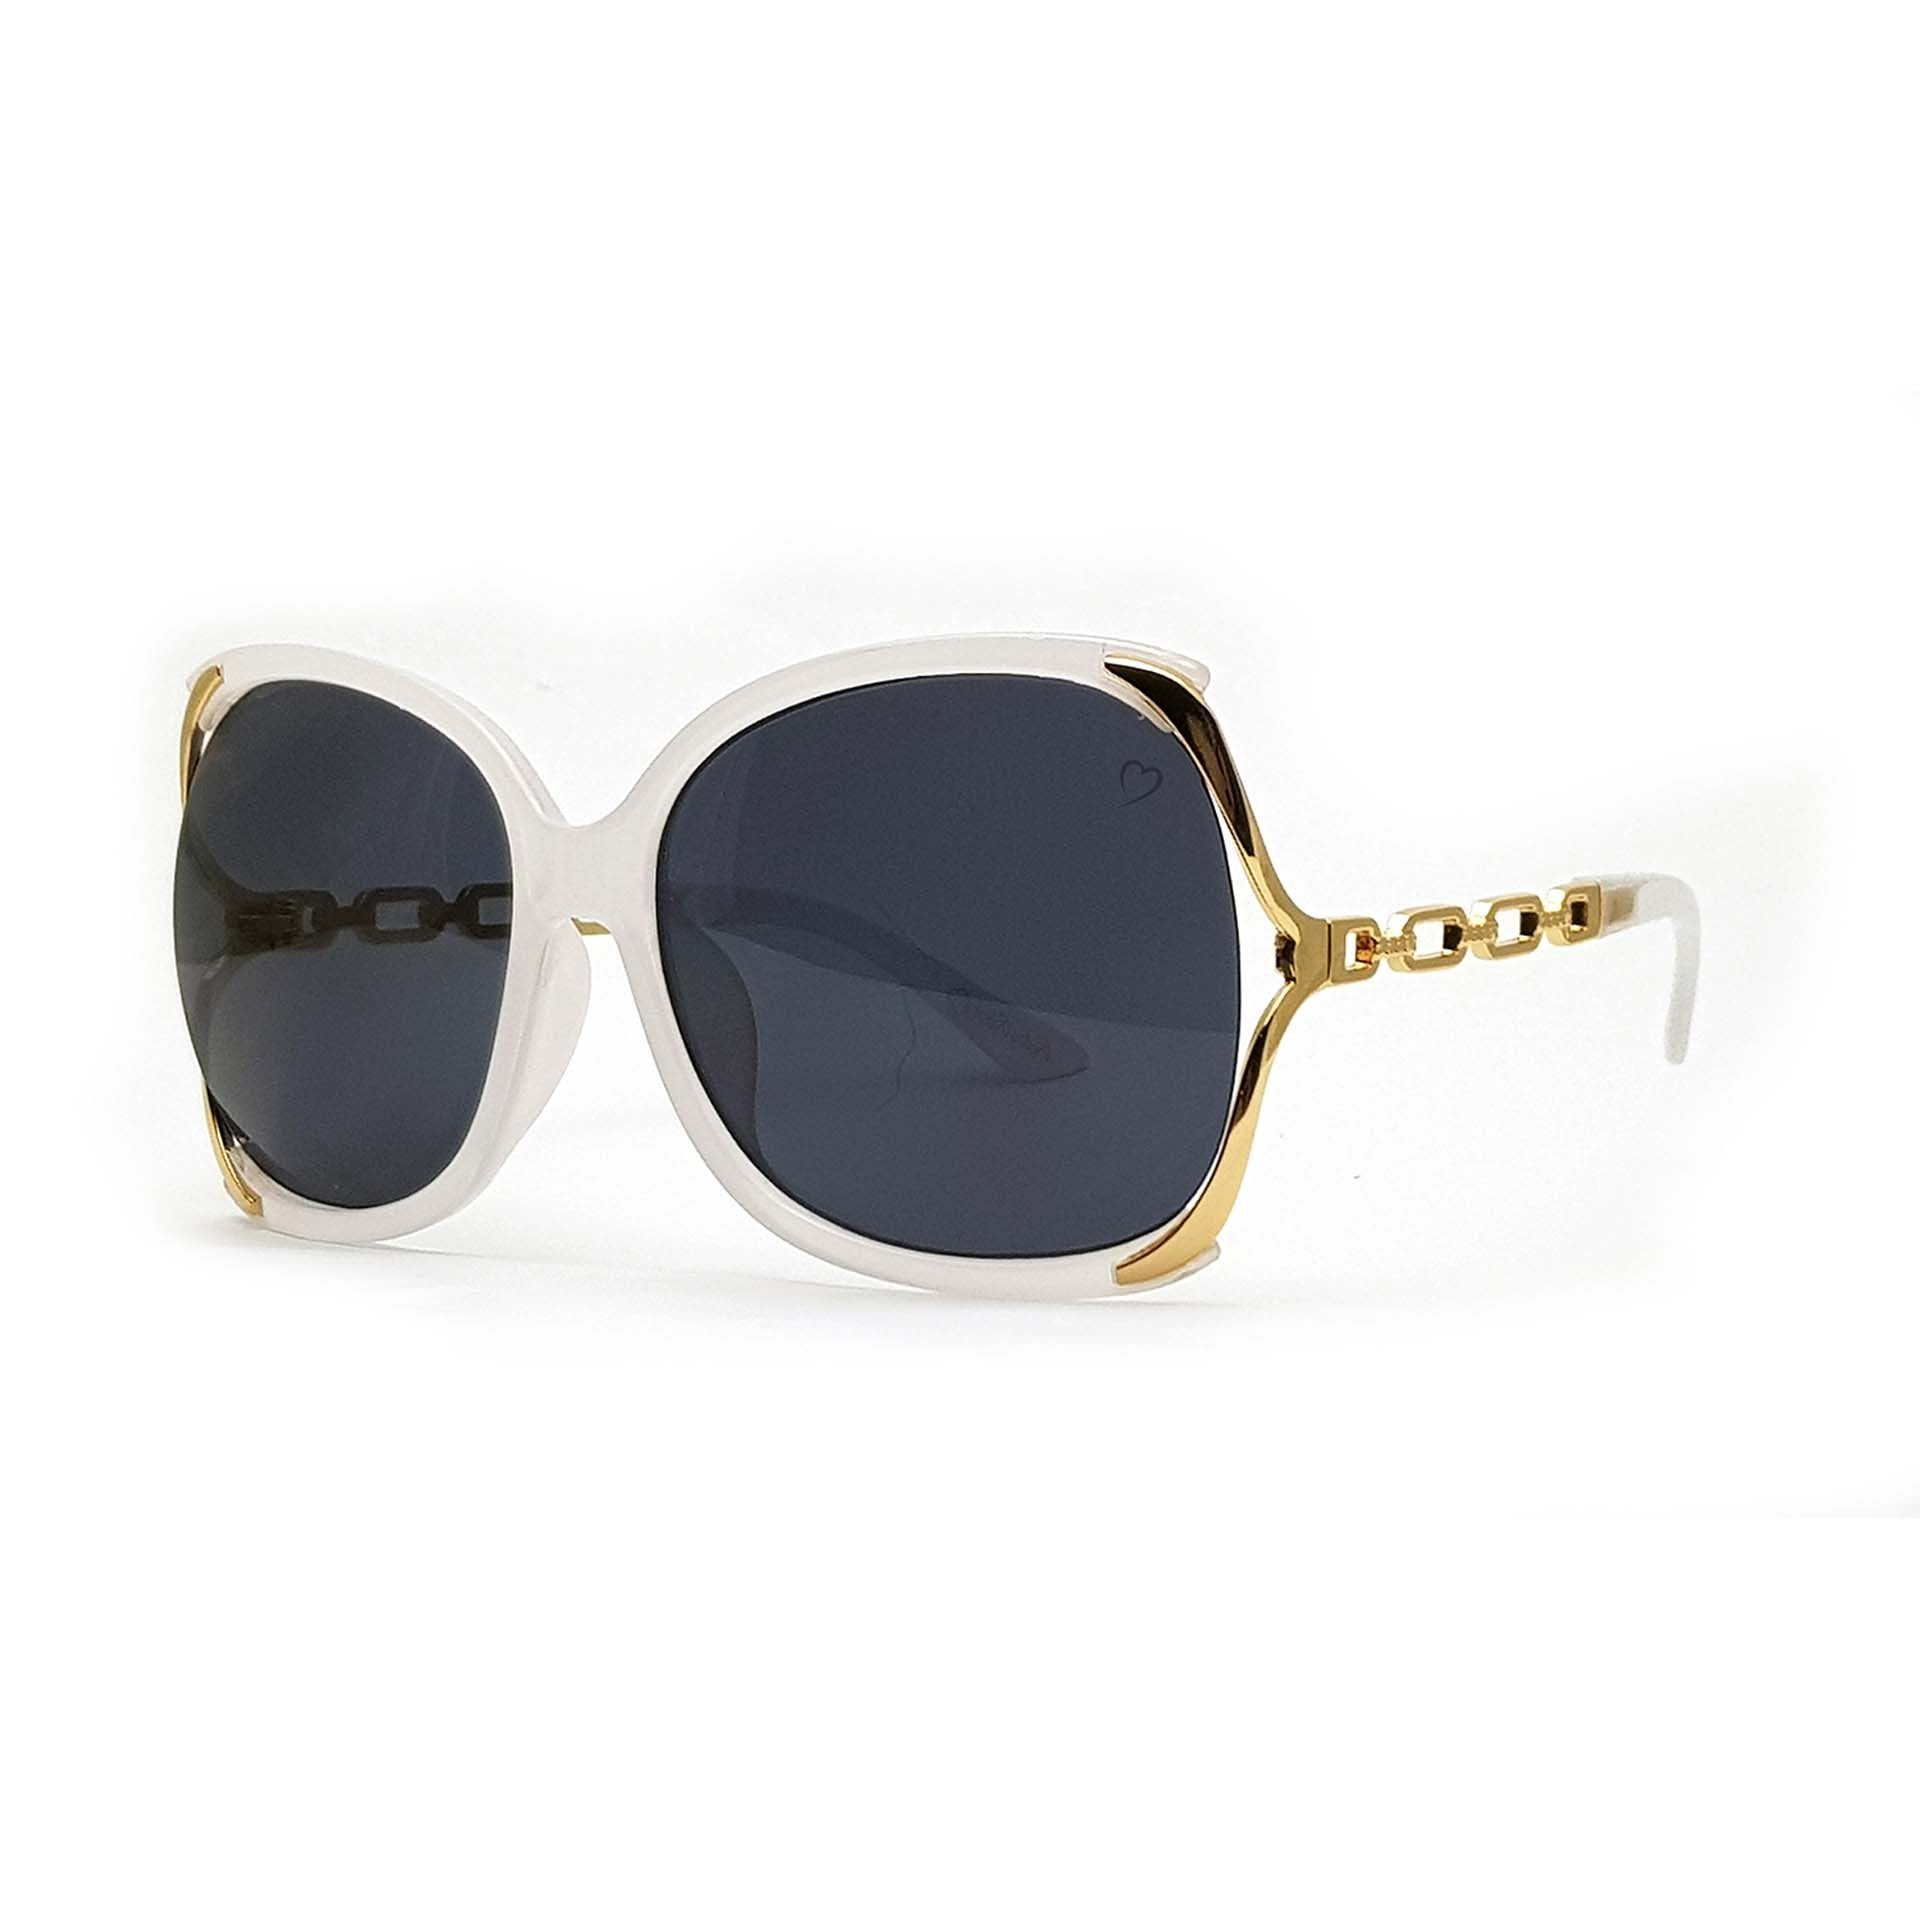 'Cherry' Oversized Sunglasses In Crystal